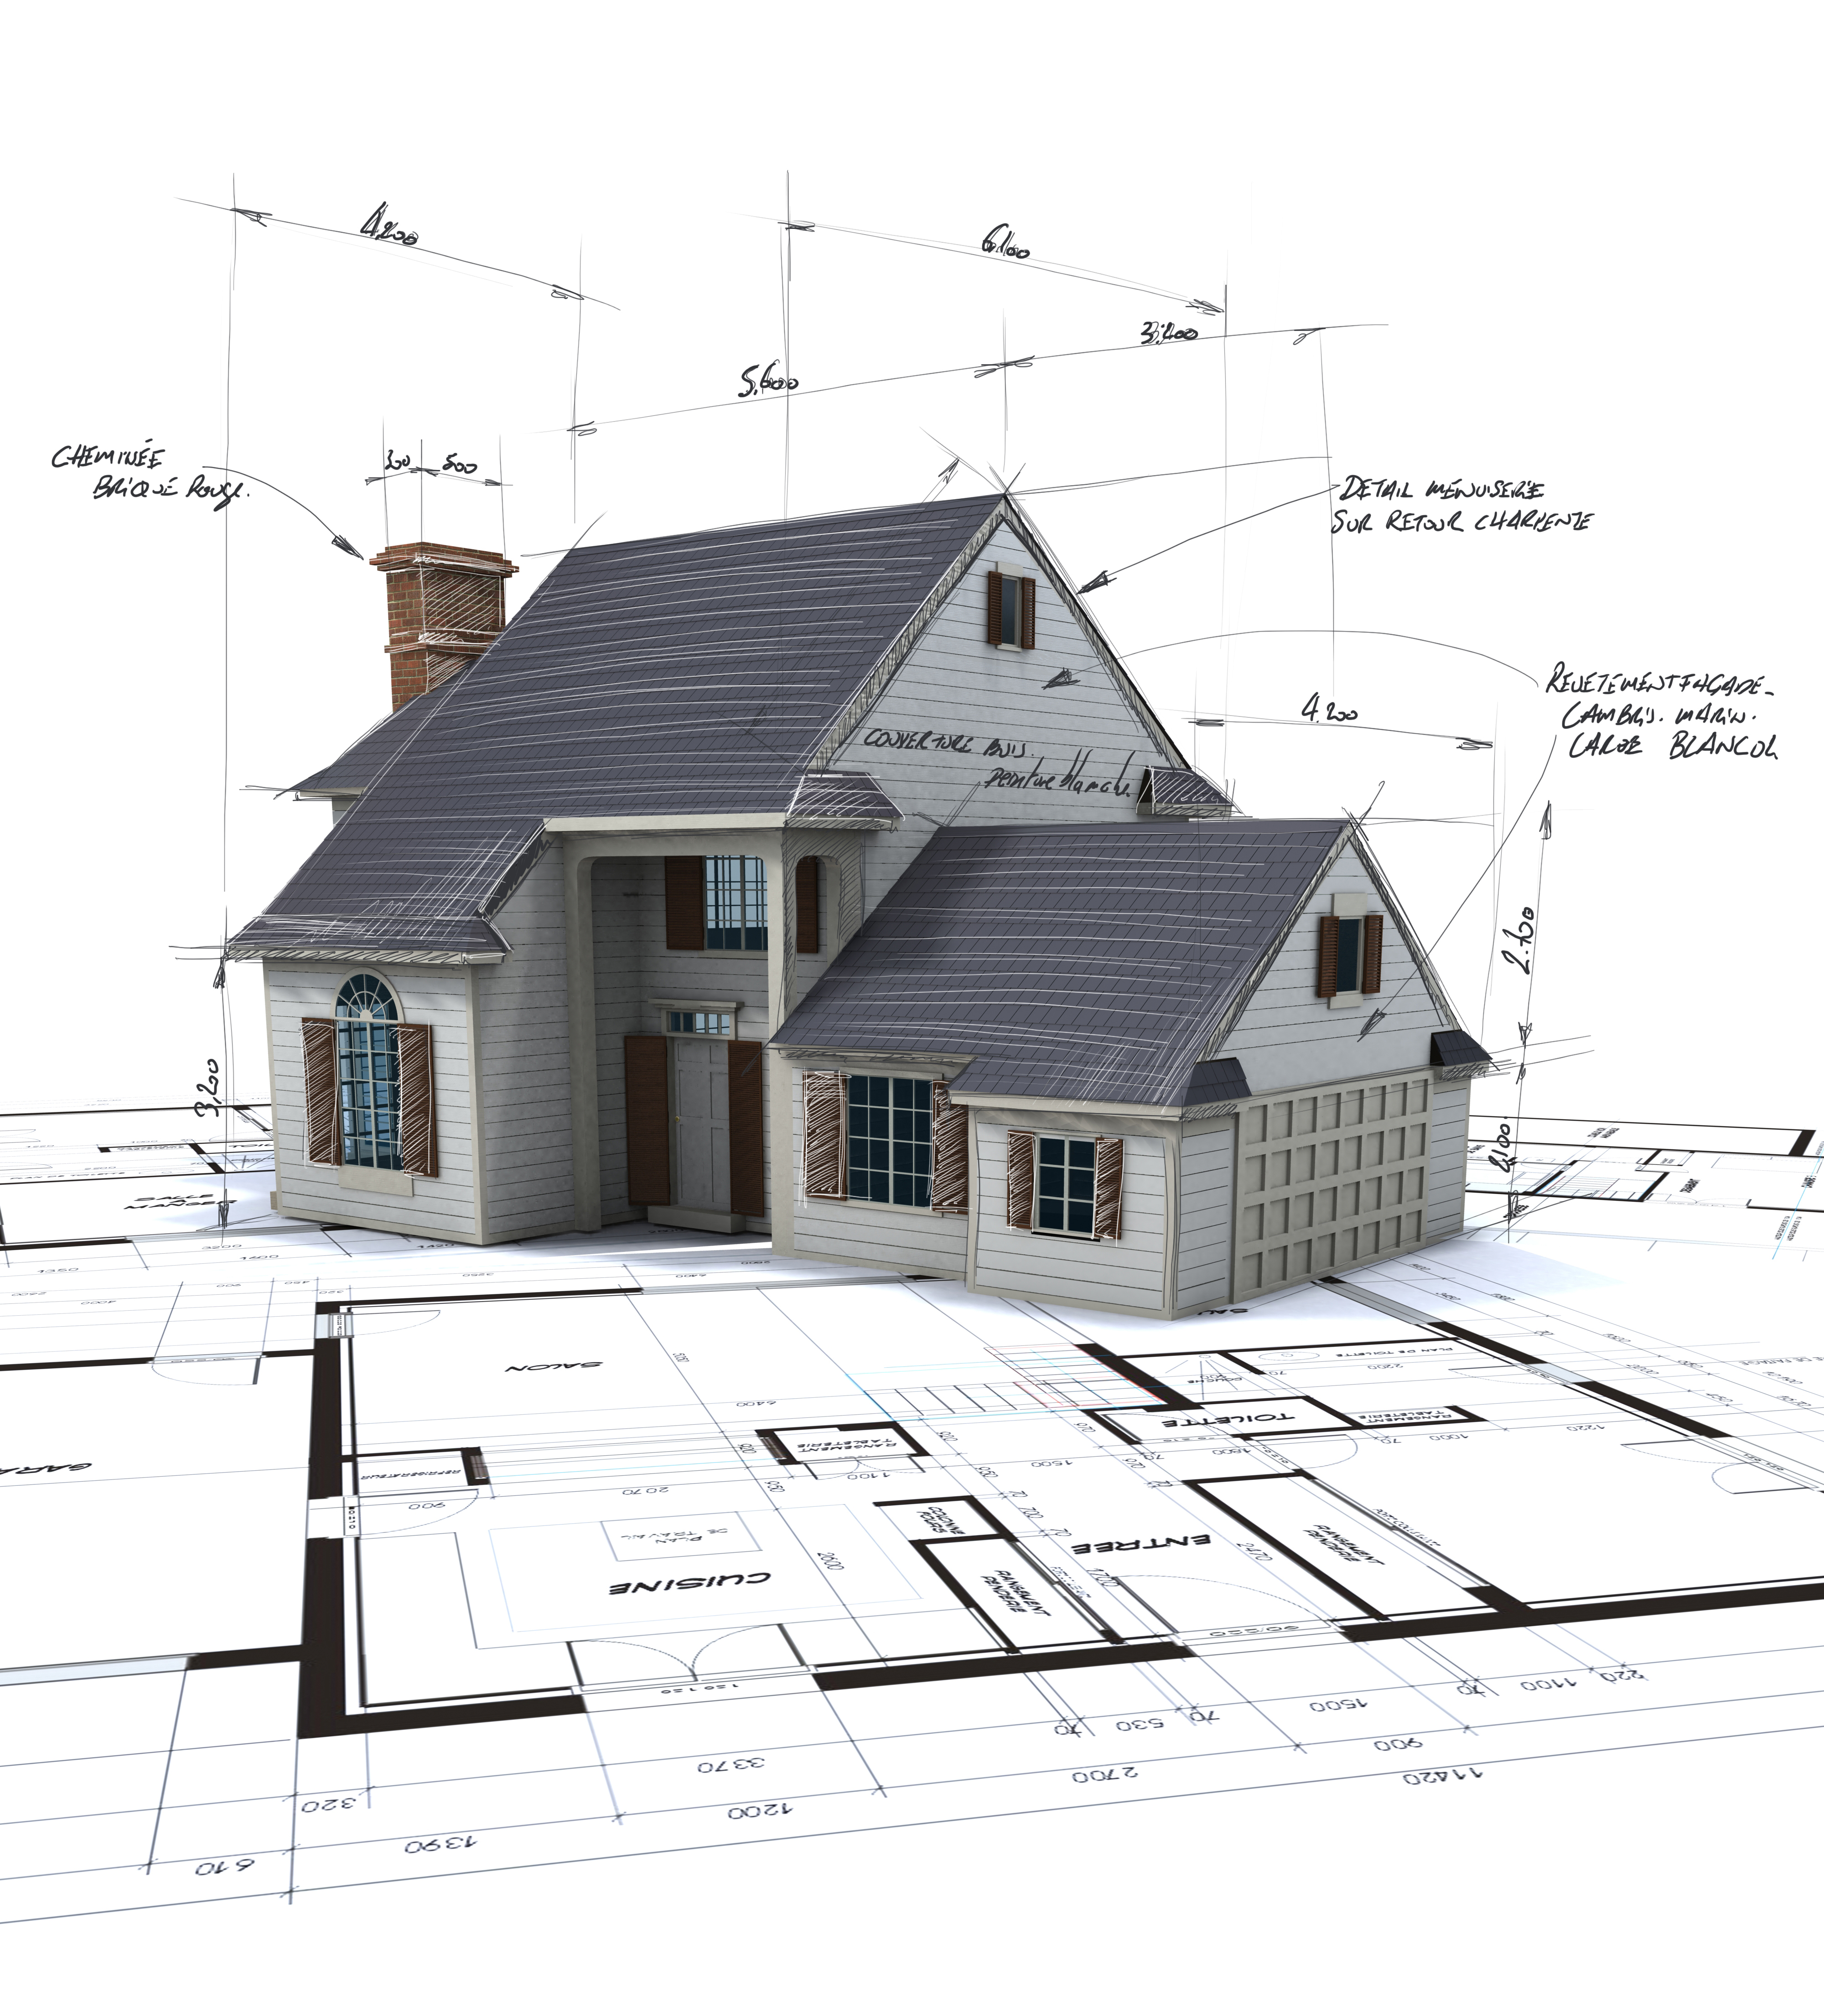 Drawing of a house architectural project - Is development the Right Property Investing Strategy For You